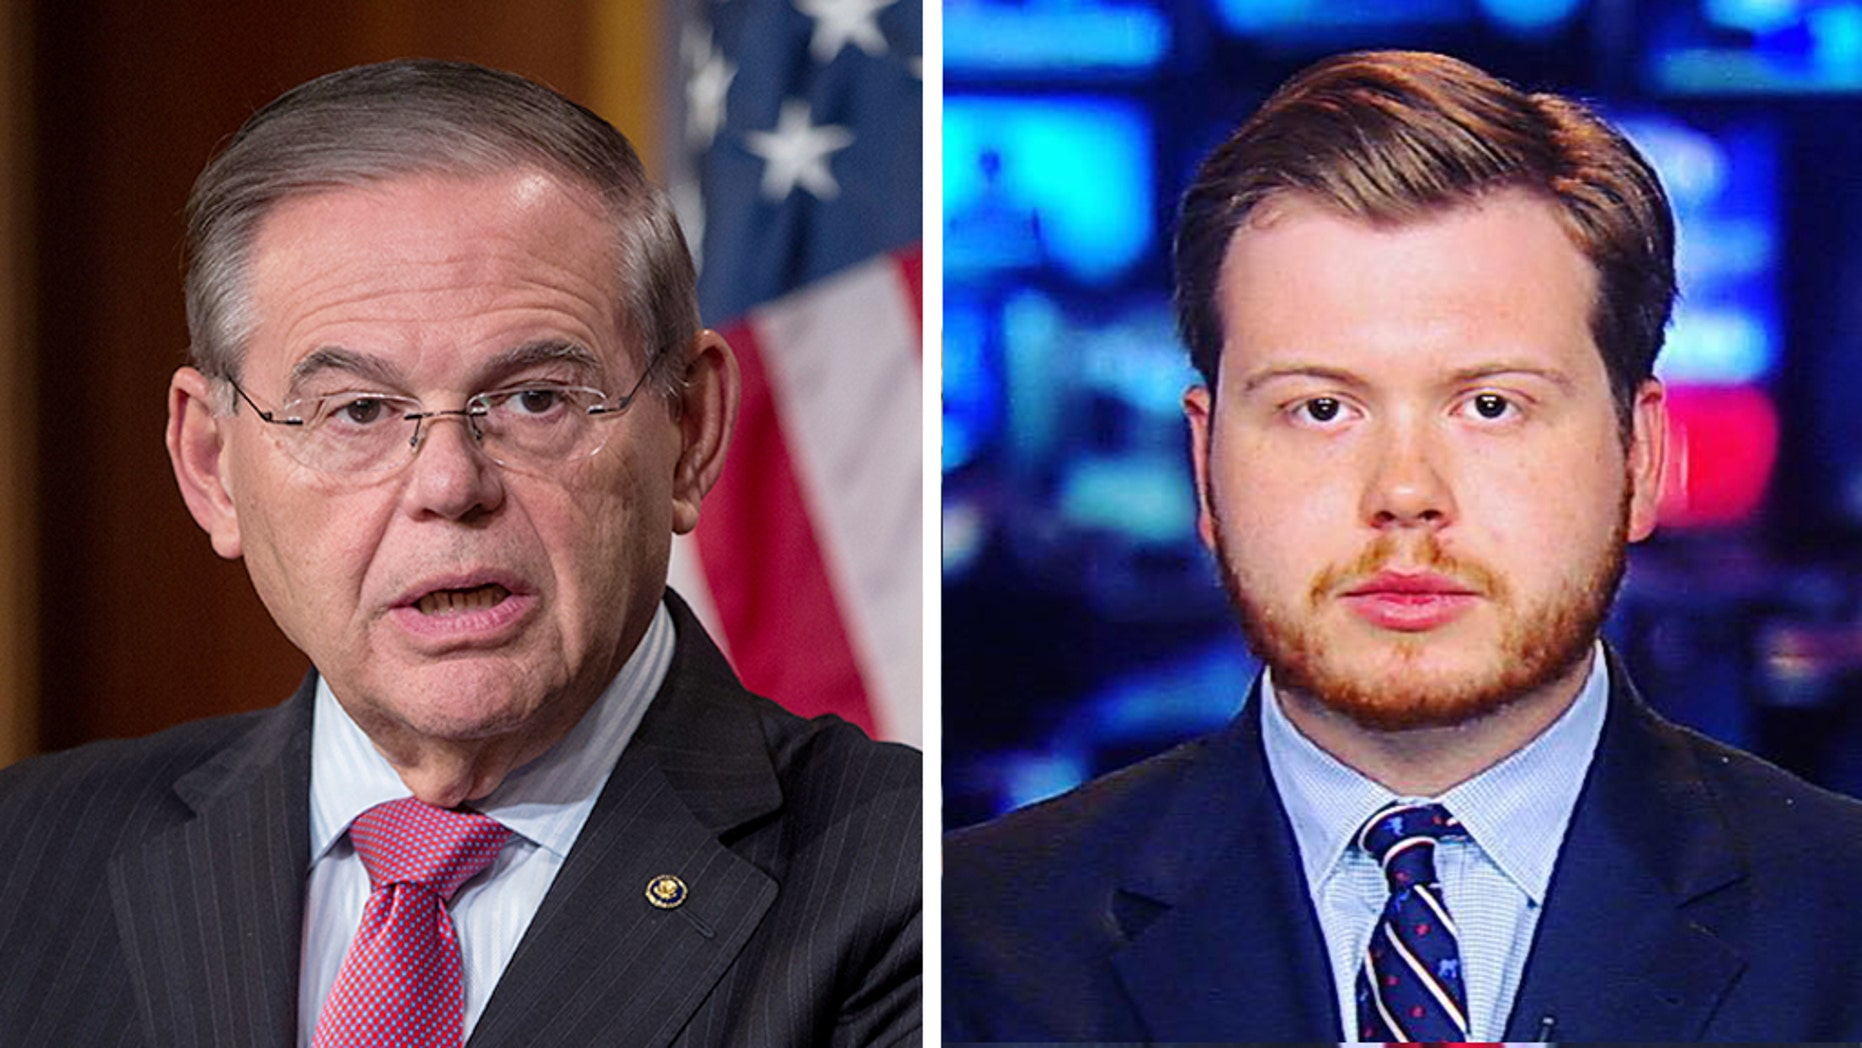 Sen. Bob Menendez, left, had a testy encounter with Daily Caller reporter Henry Rodgers. (Zach Gibson/Getty Images, Fox News)